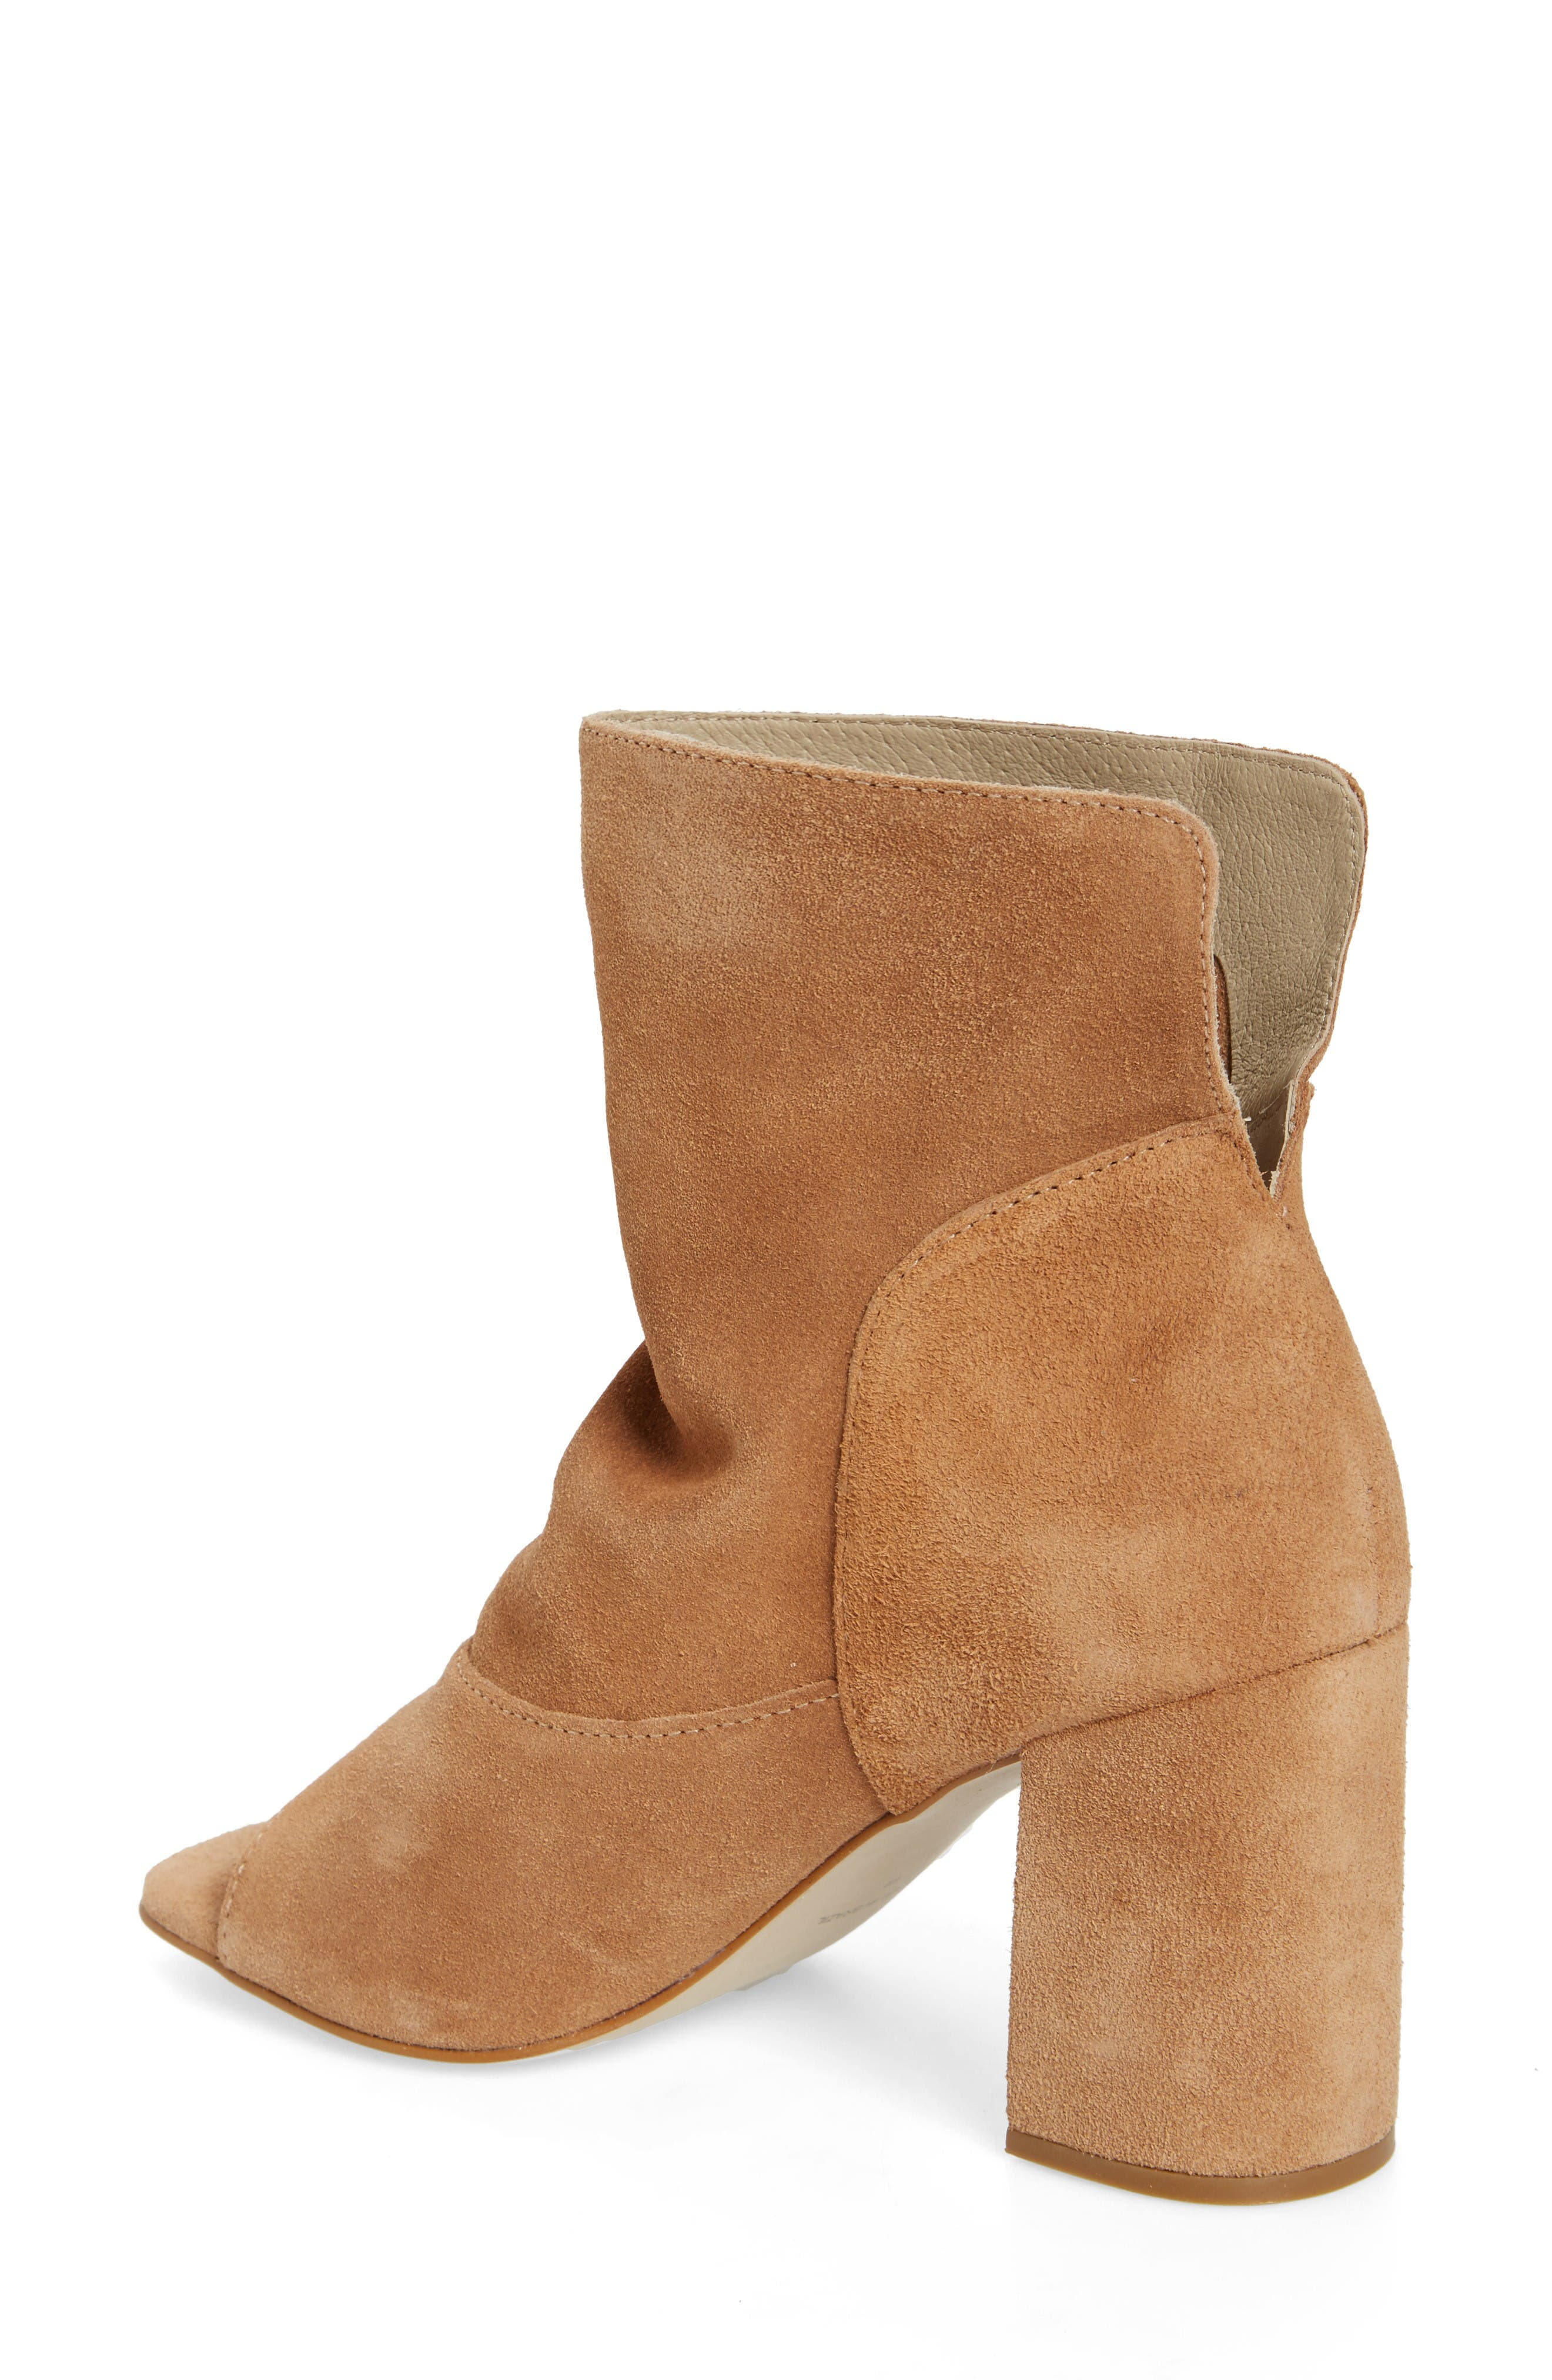 Gordy Peeptoe Bootie,                             Alternate thumbnail 2, color,                             Natural Suede